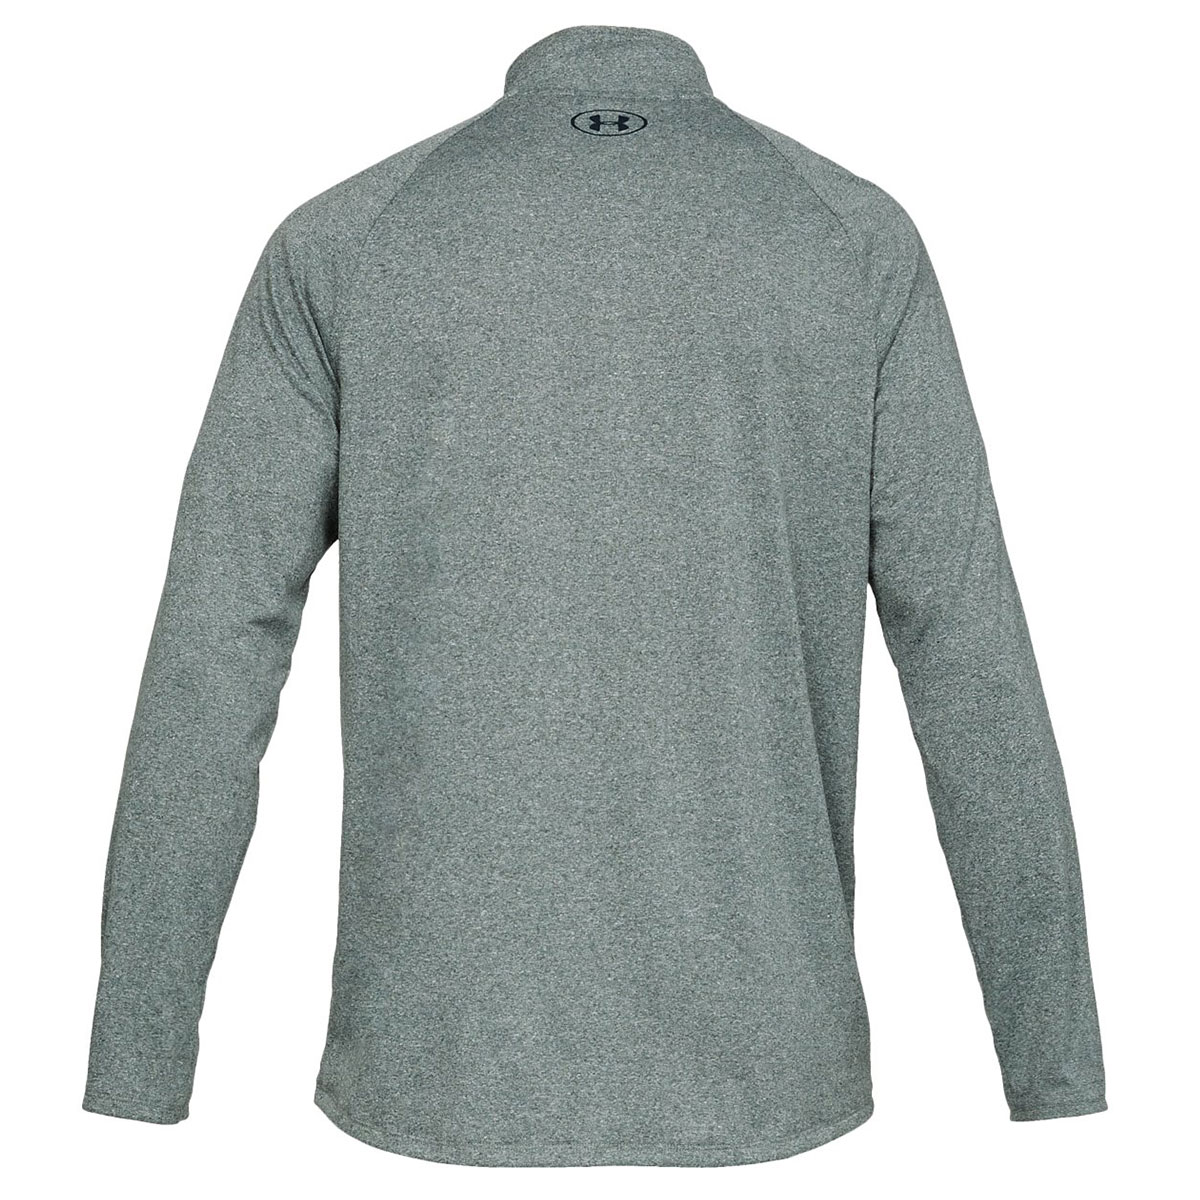 Under-Armour-Mens-2019-UA-Tech-2-0-1-2-Zip-HeatGear-Training-Breathable-Sweater thumbnail 13